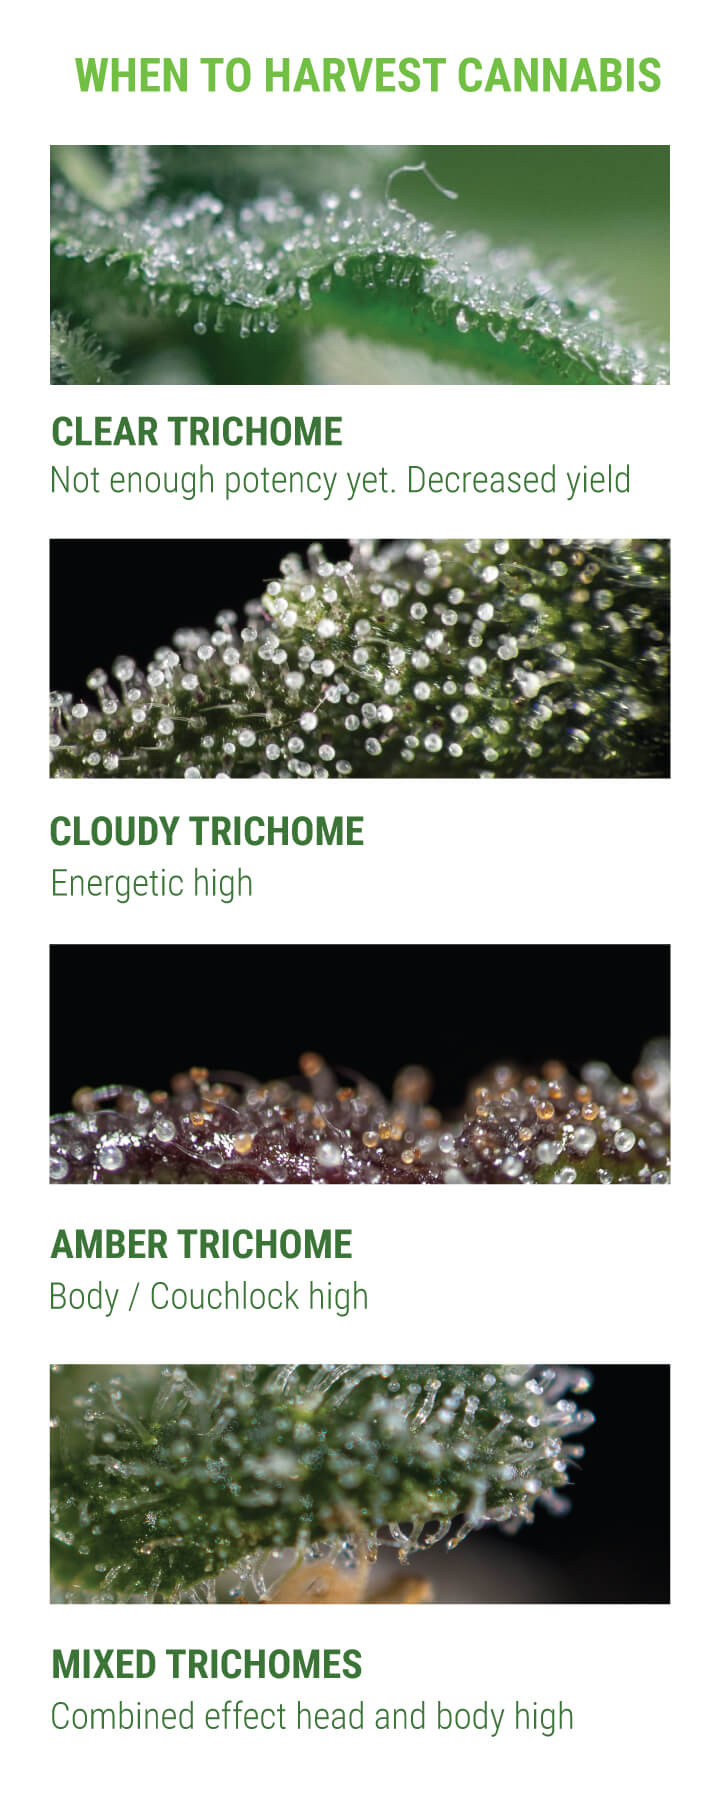 When to Harvest Cannabis by Trichomes Approach